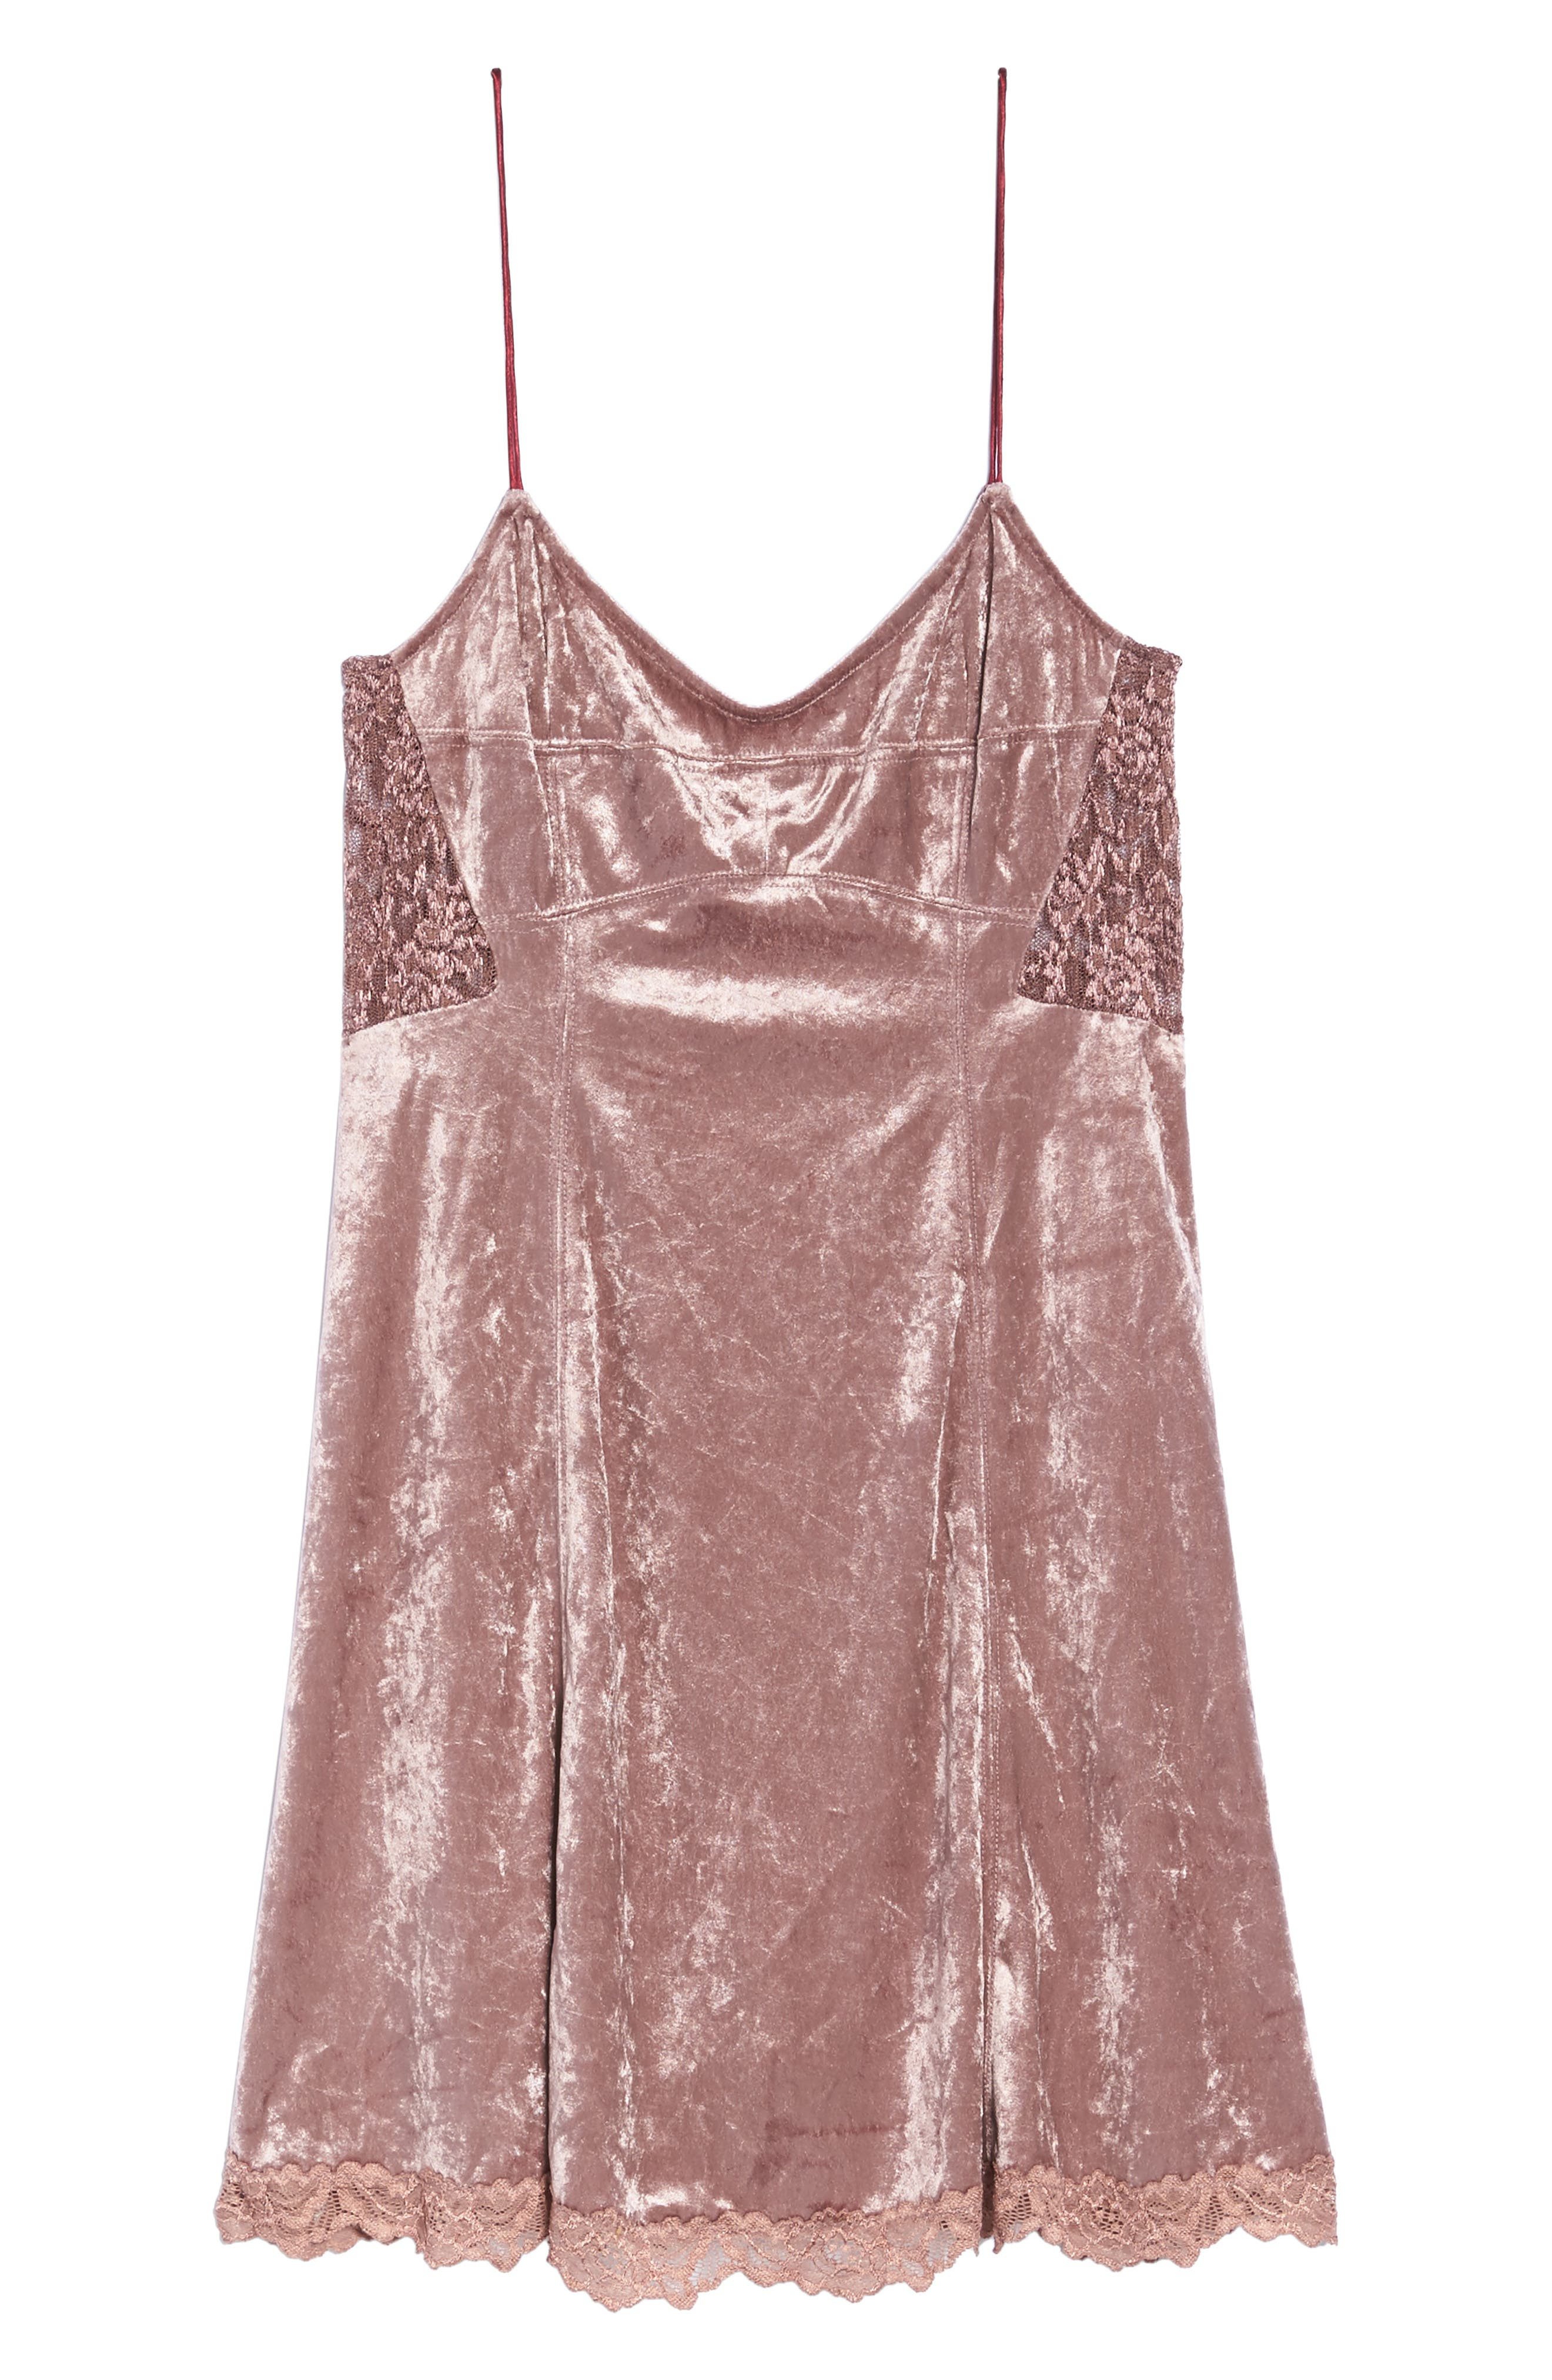 Intimately FP Velvet Chemise,                             Alternate thumbnail 4, color,                             Mauve